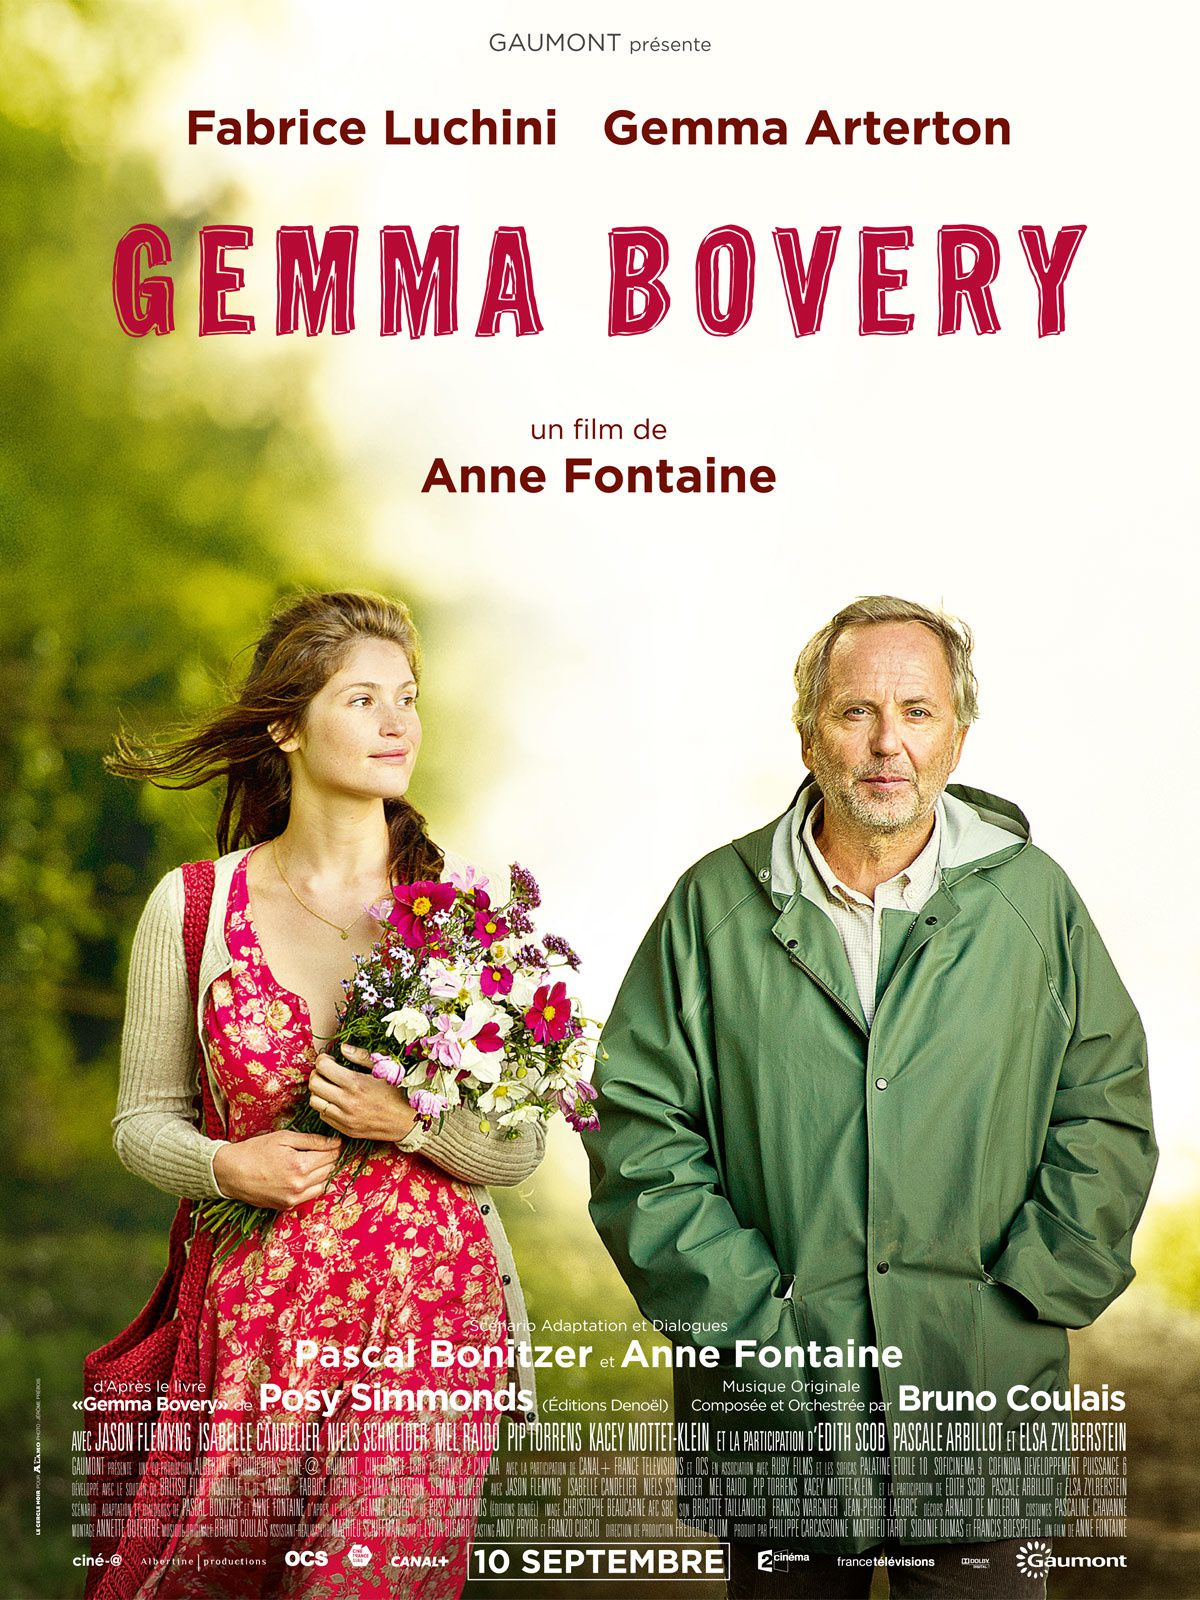 GEMMA BOVERY / CINEMA / ANNE FONTAINE